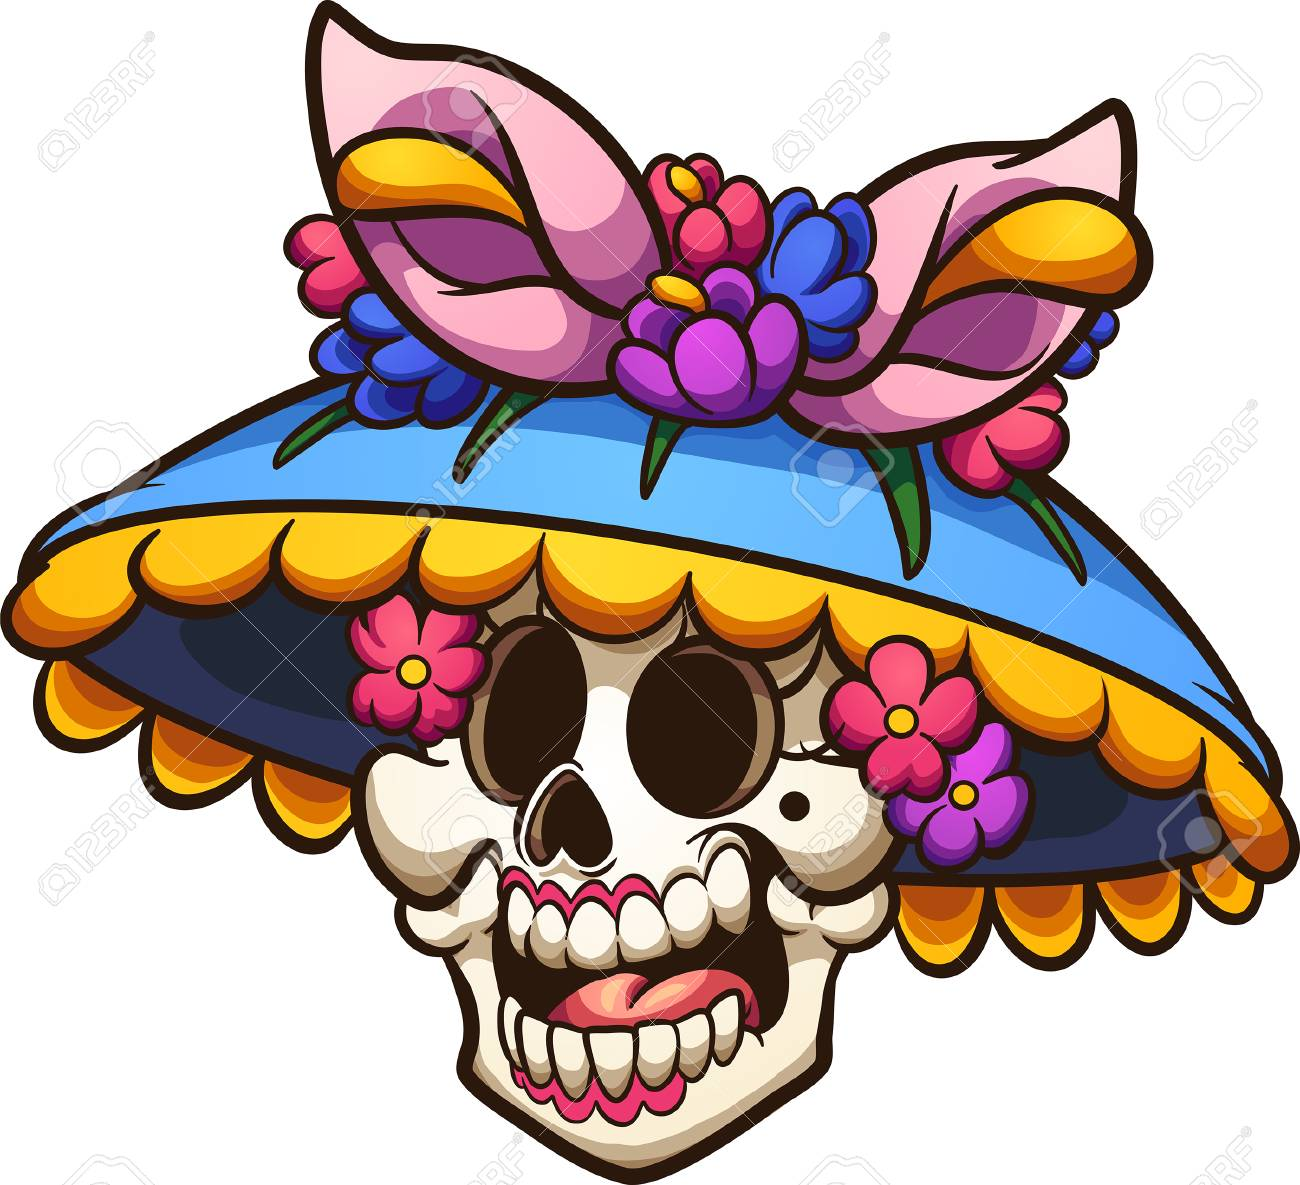 Day Of The Dead Mexican Catrina Head. Clip Art Illustration With ...